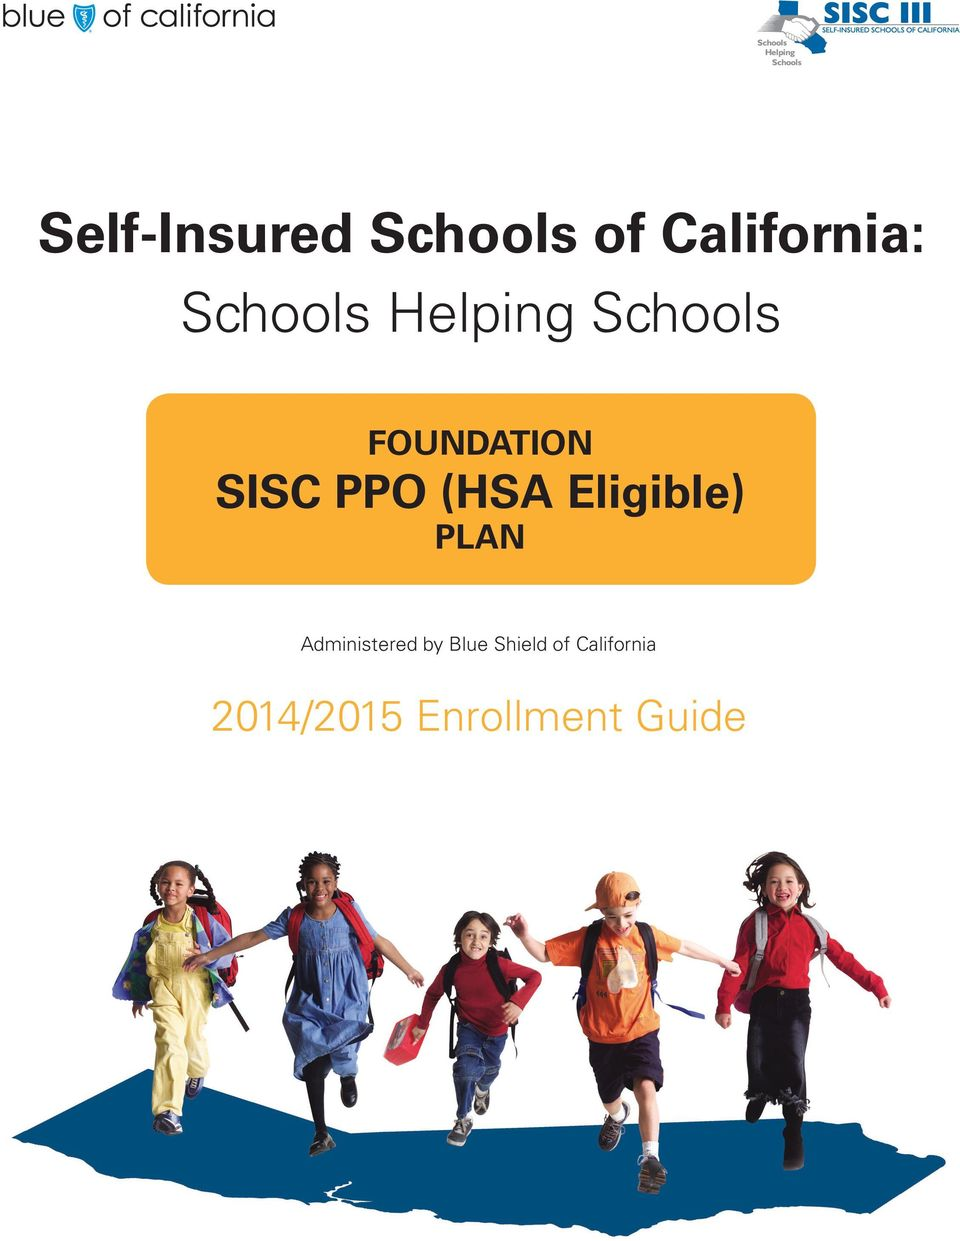 PPO (HSA Eligible) PLAN Administered by